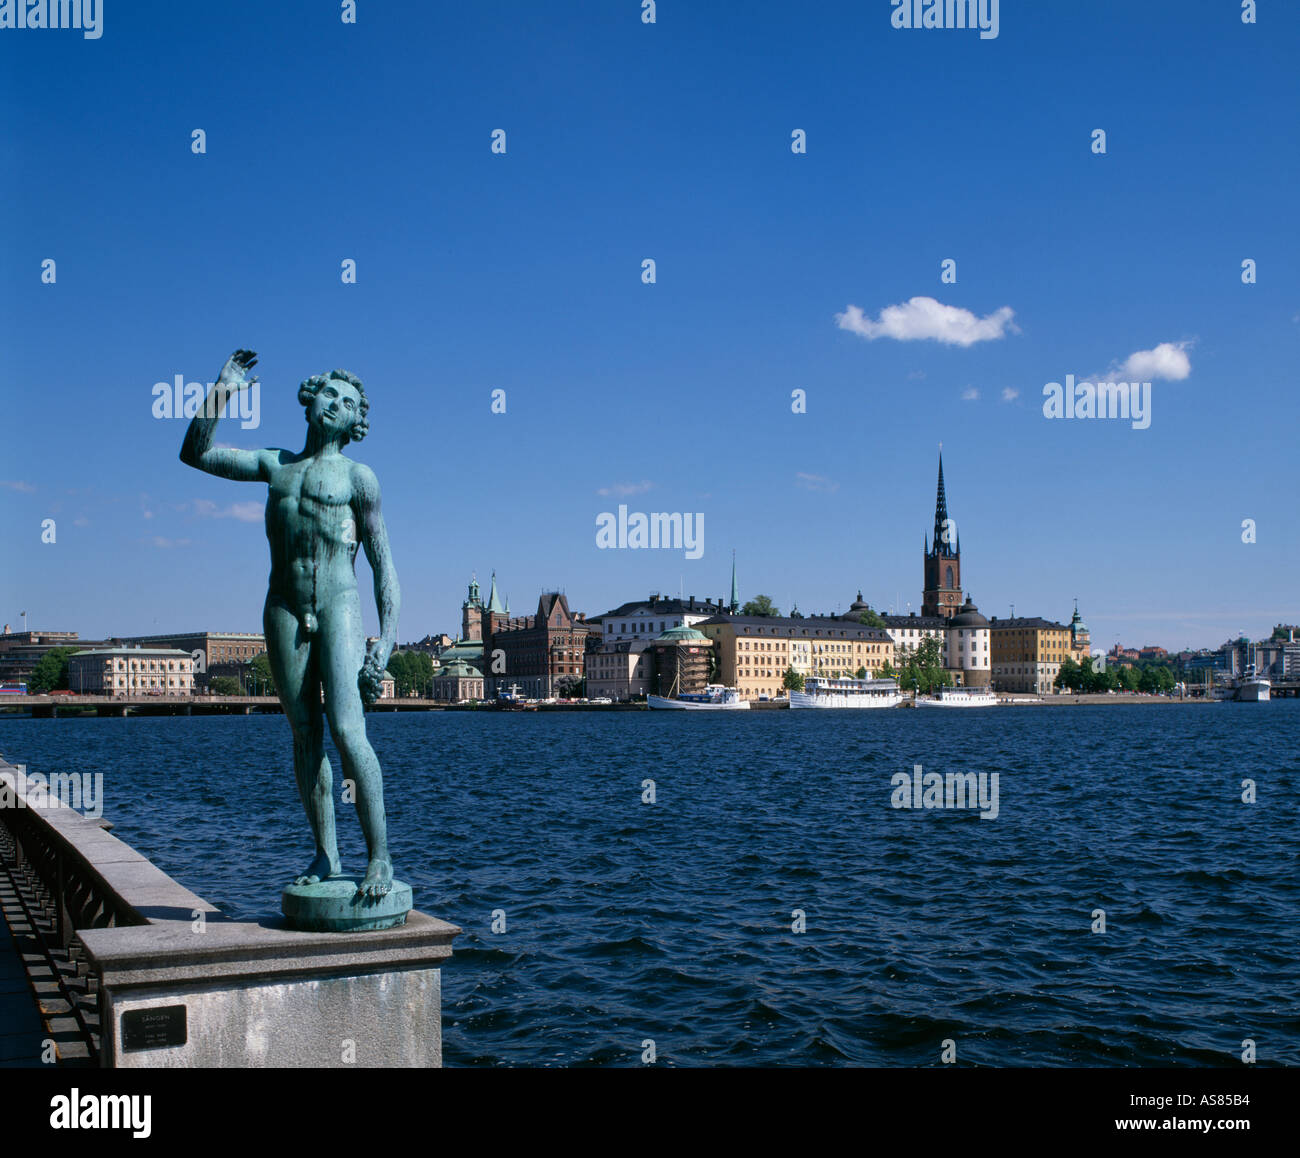 Statue at City Hall and Riddarholmen Stockholm Sweden - Stock Image